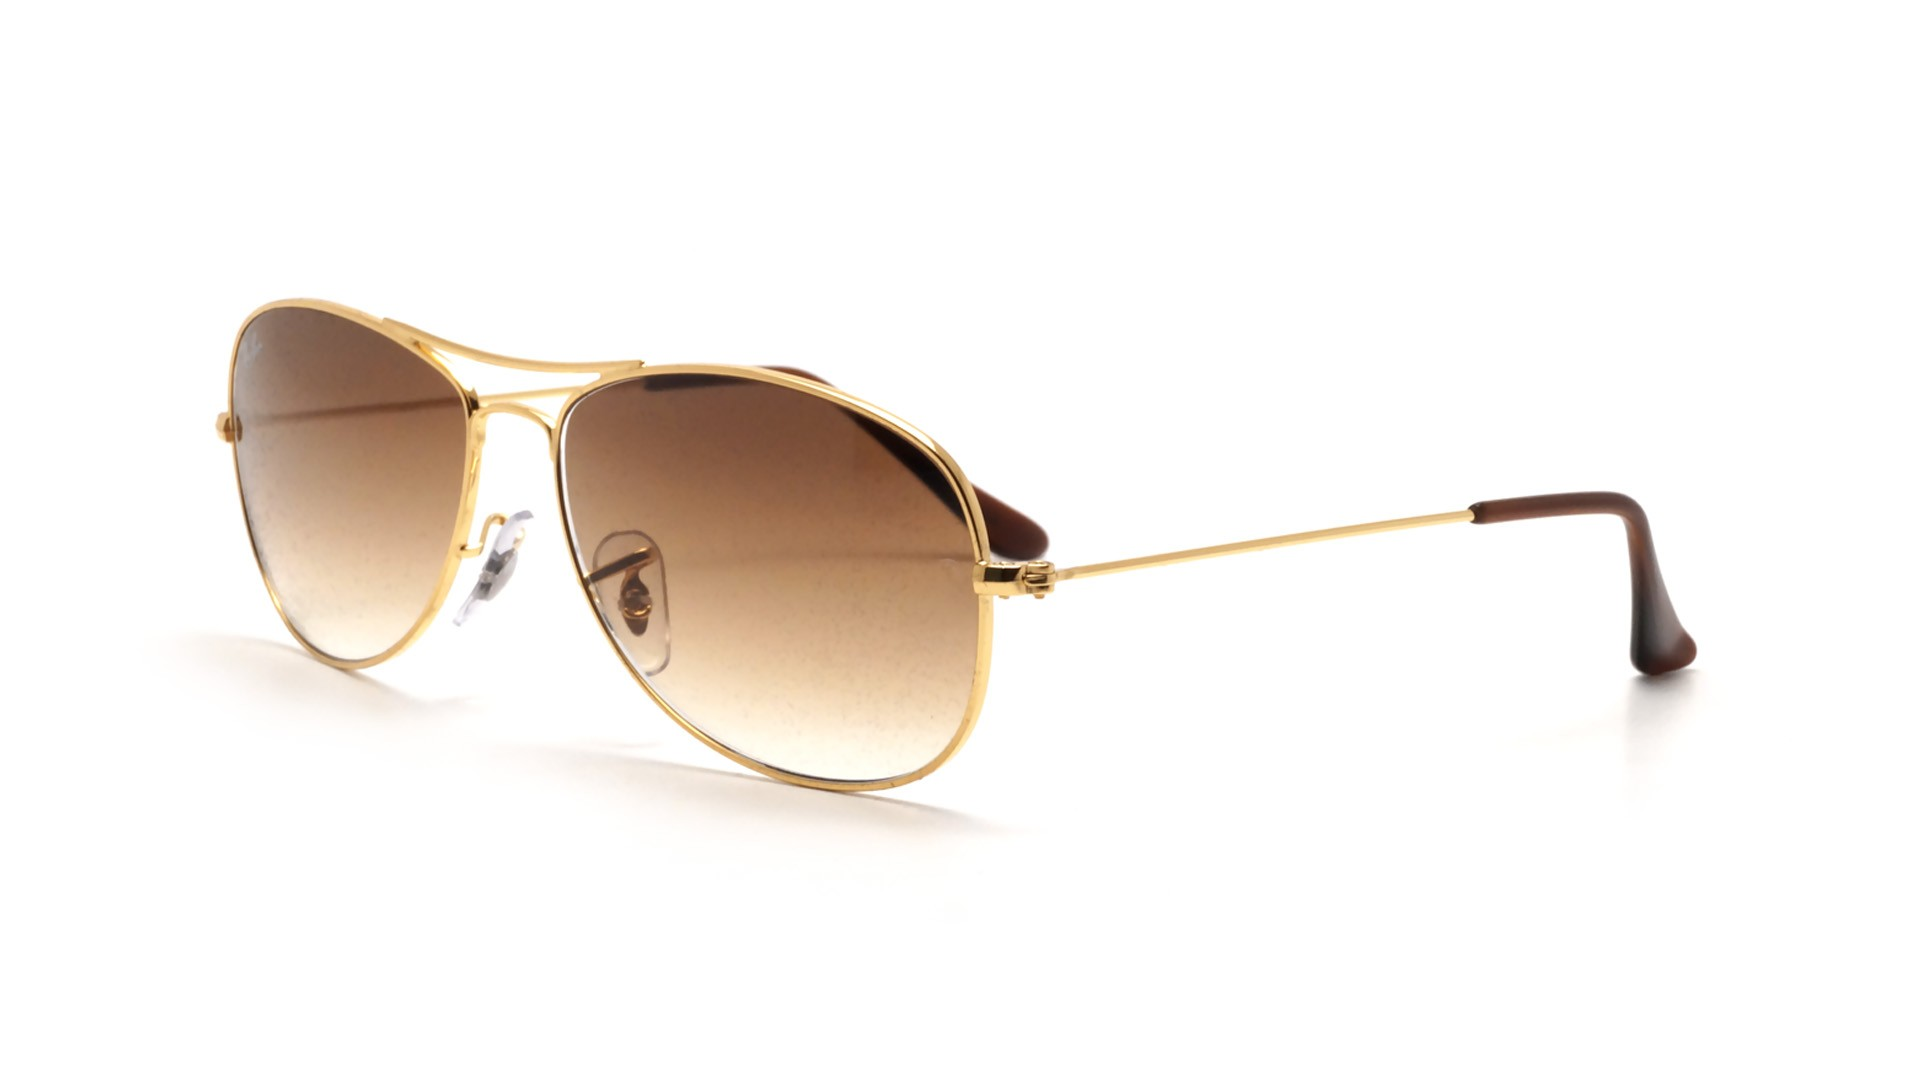 e3e6351791 Sunglasses Ray-Ban Cockpit Gold RB3362 001 51 56-14 Large Gradient